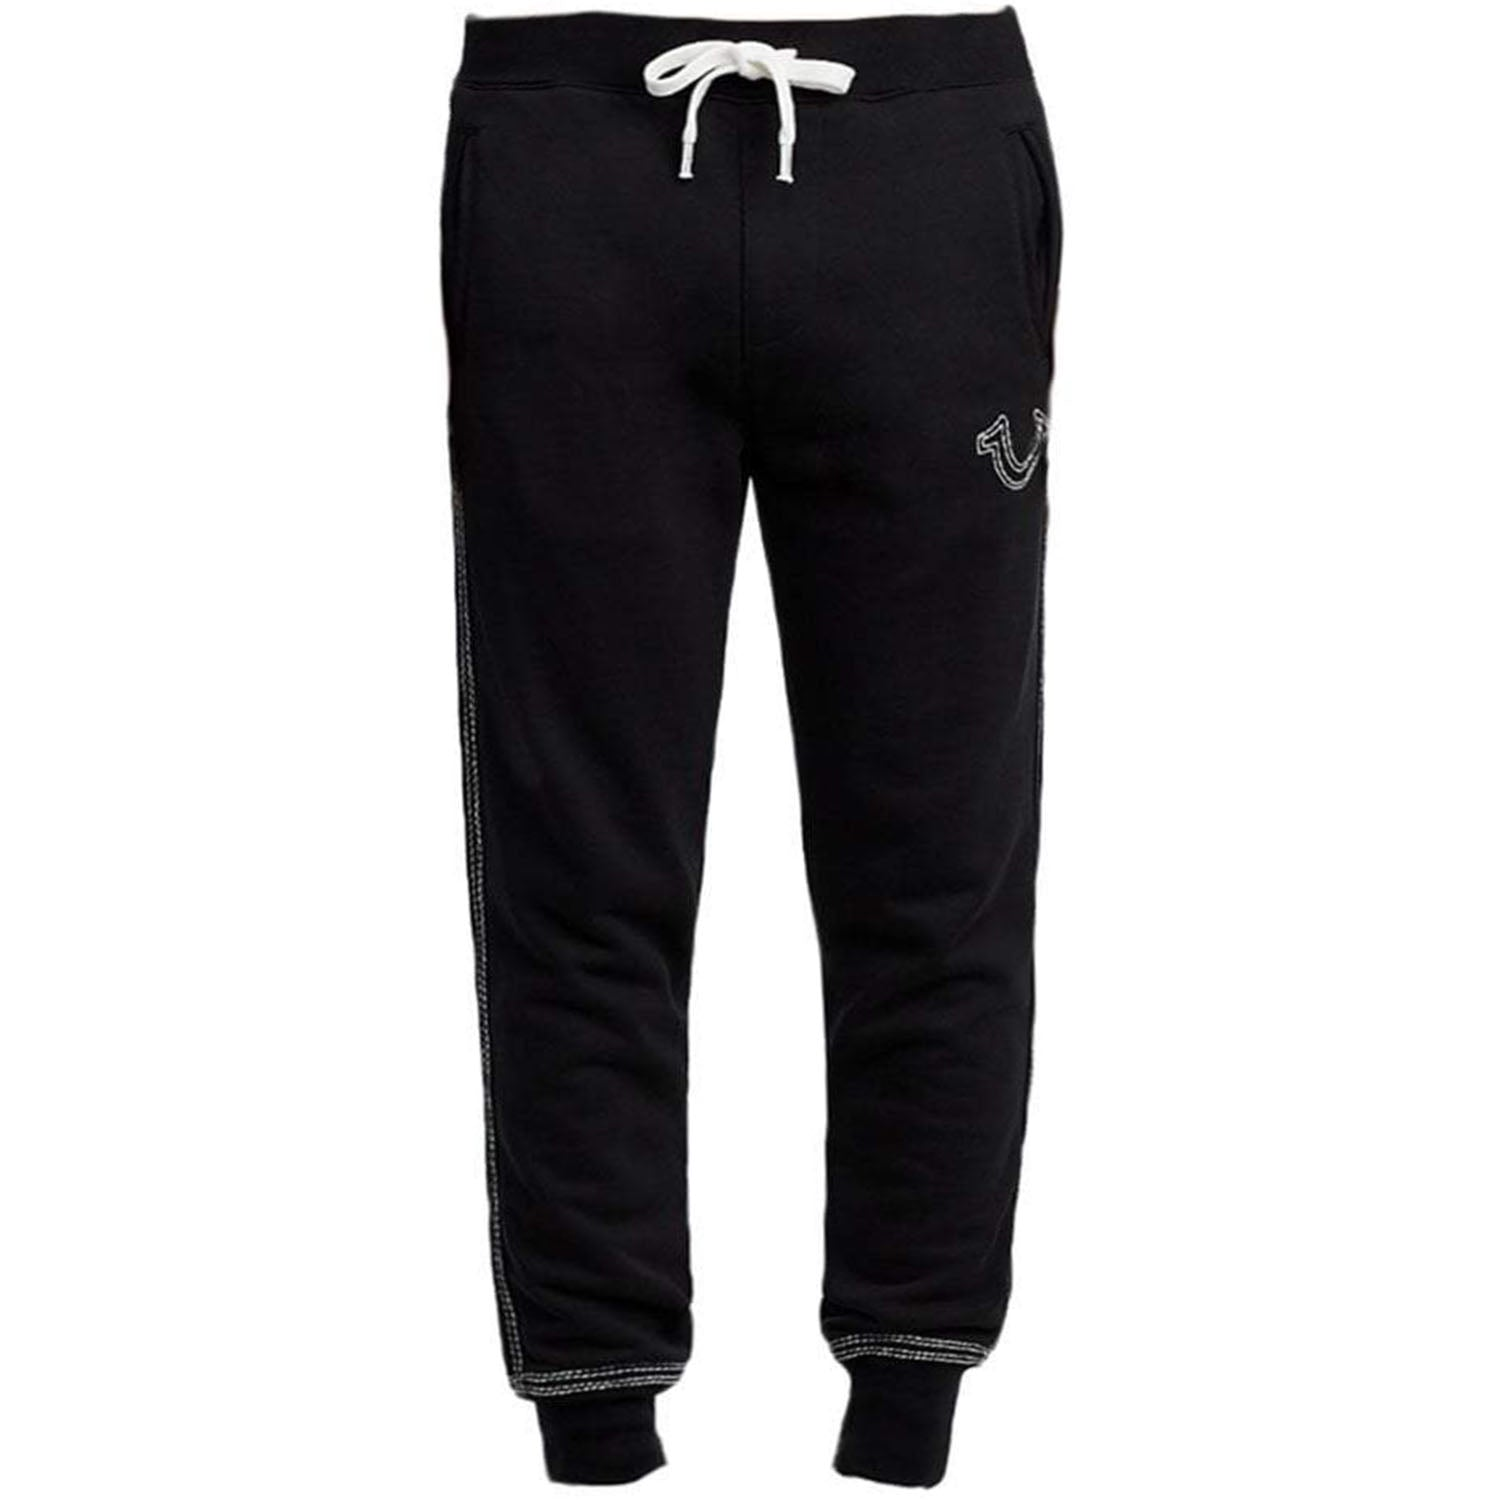 True Religion QT Core Stitch Sweatpants